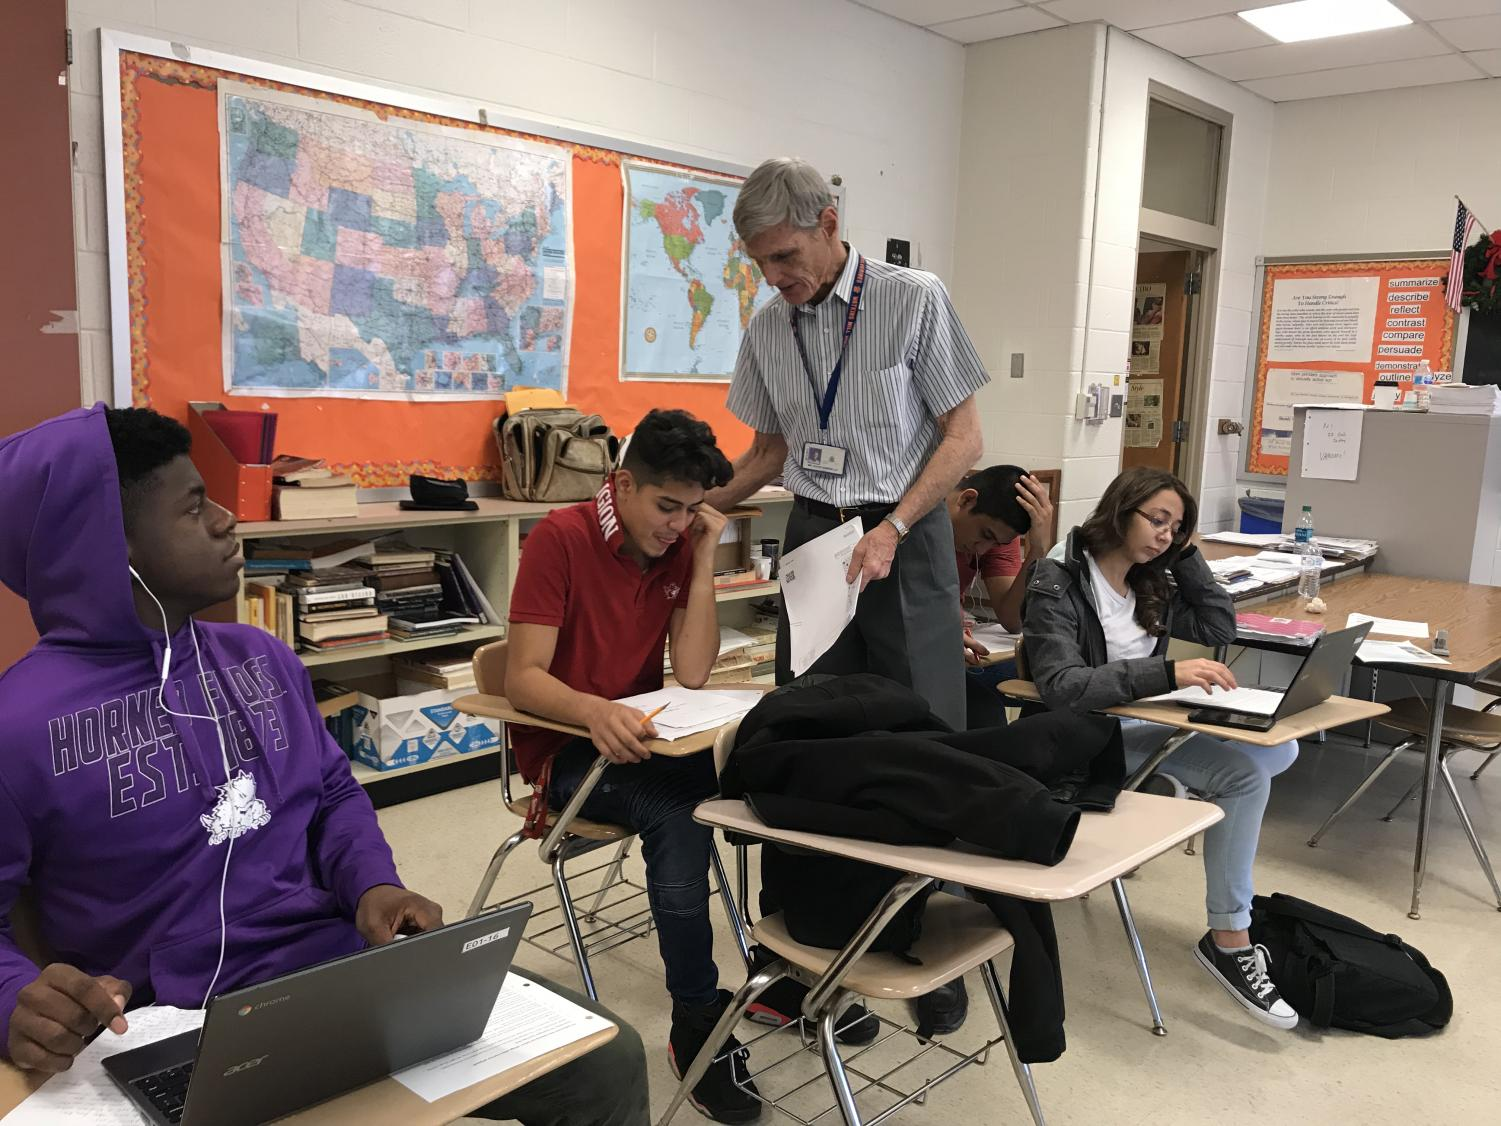 English teacher David Sampselle helps senior Jeff Flores with an assignment